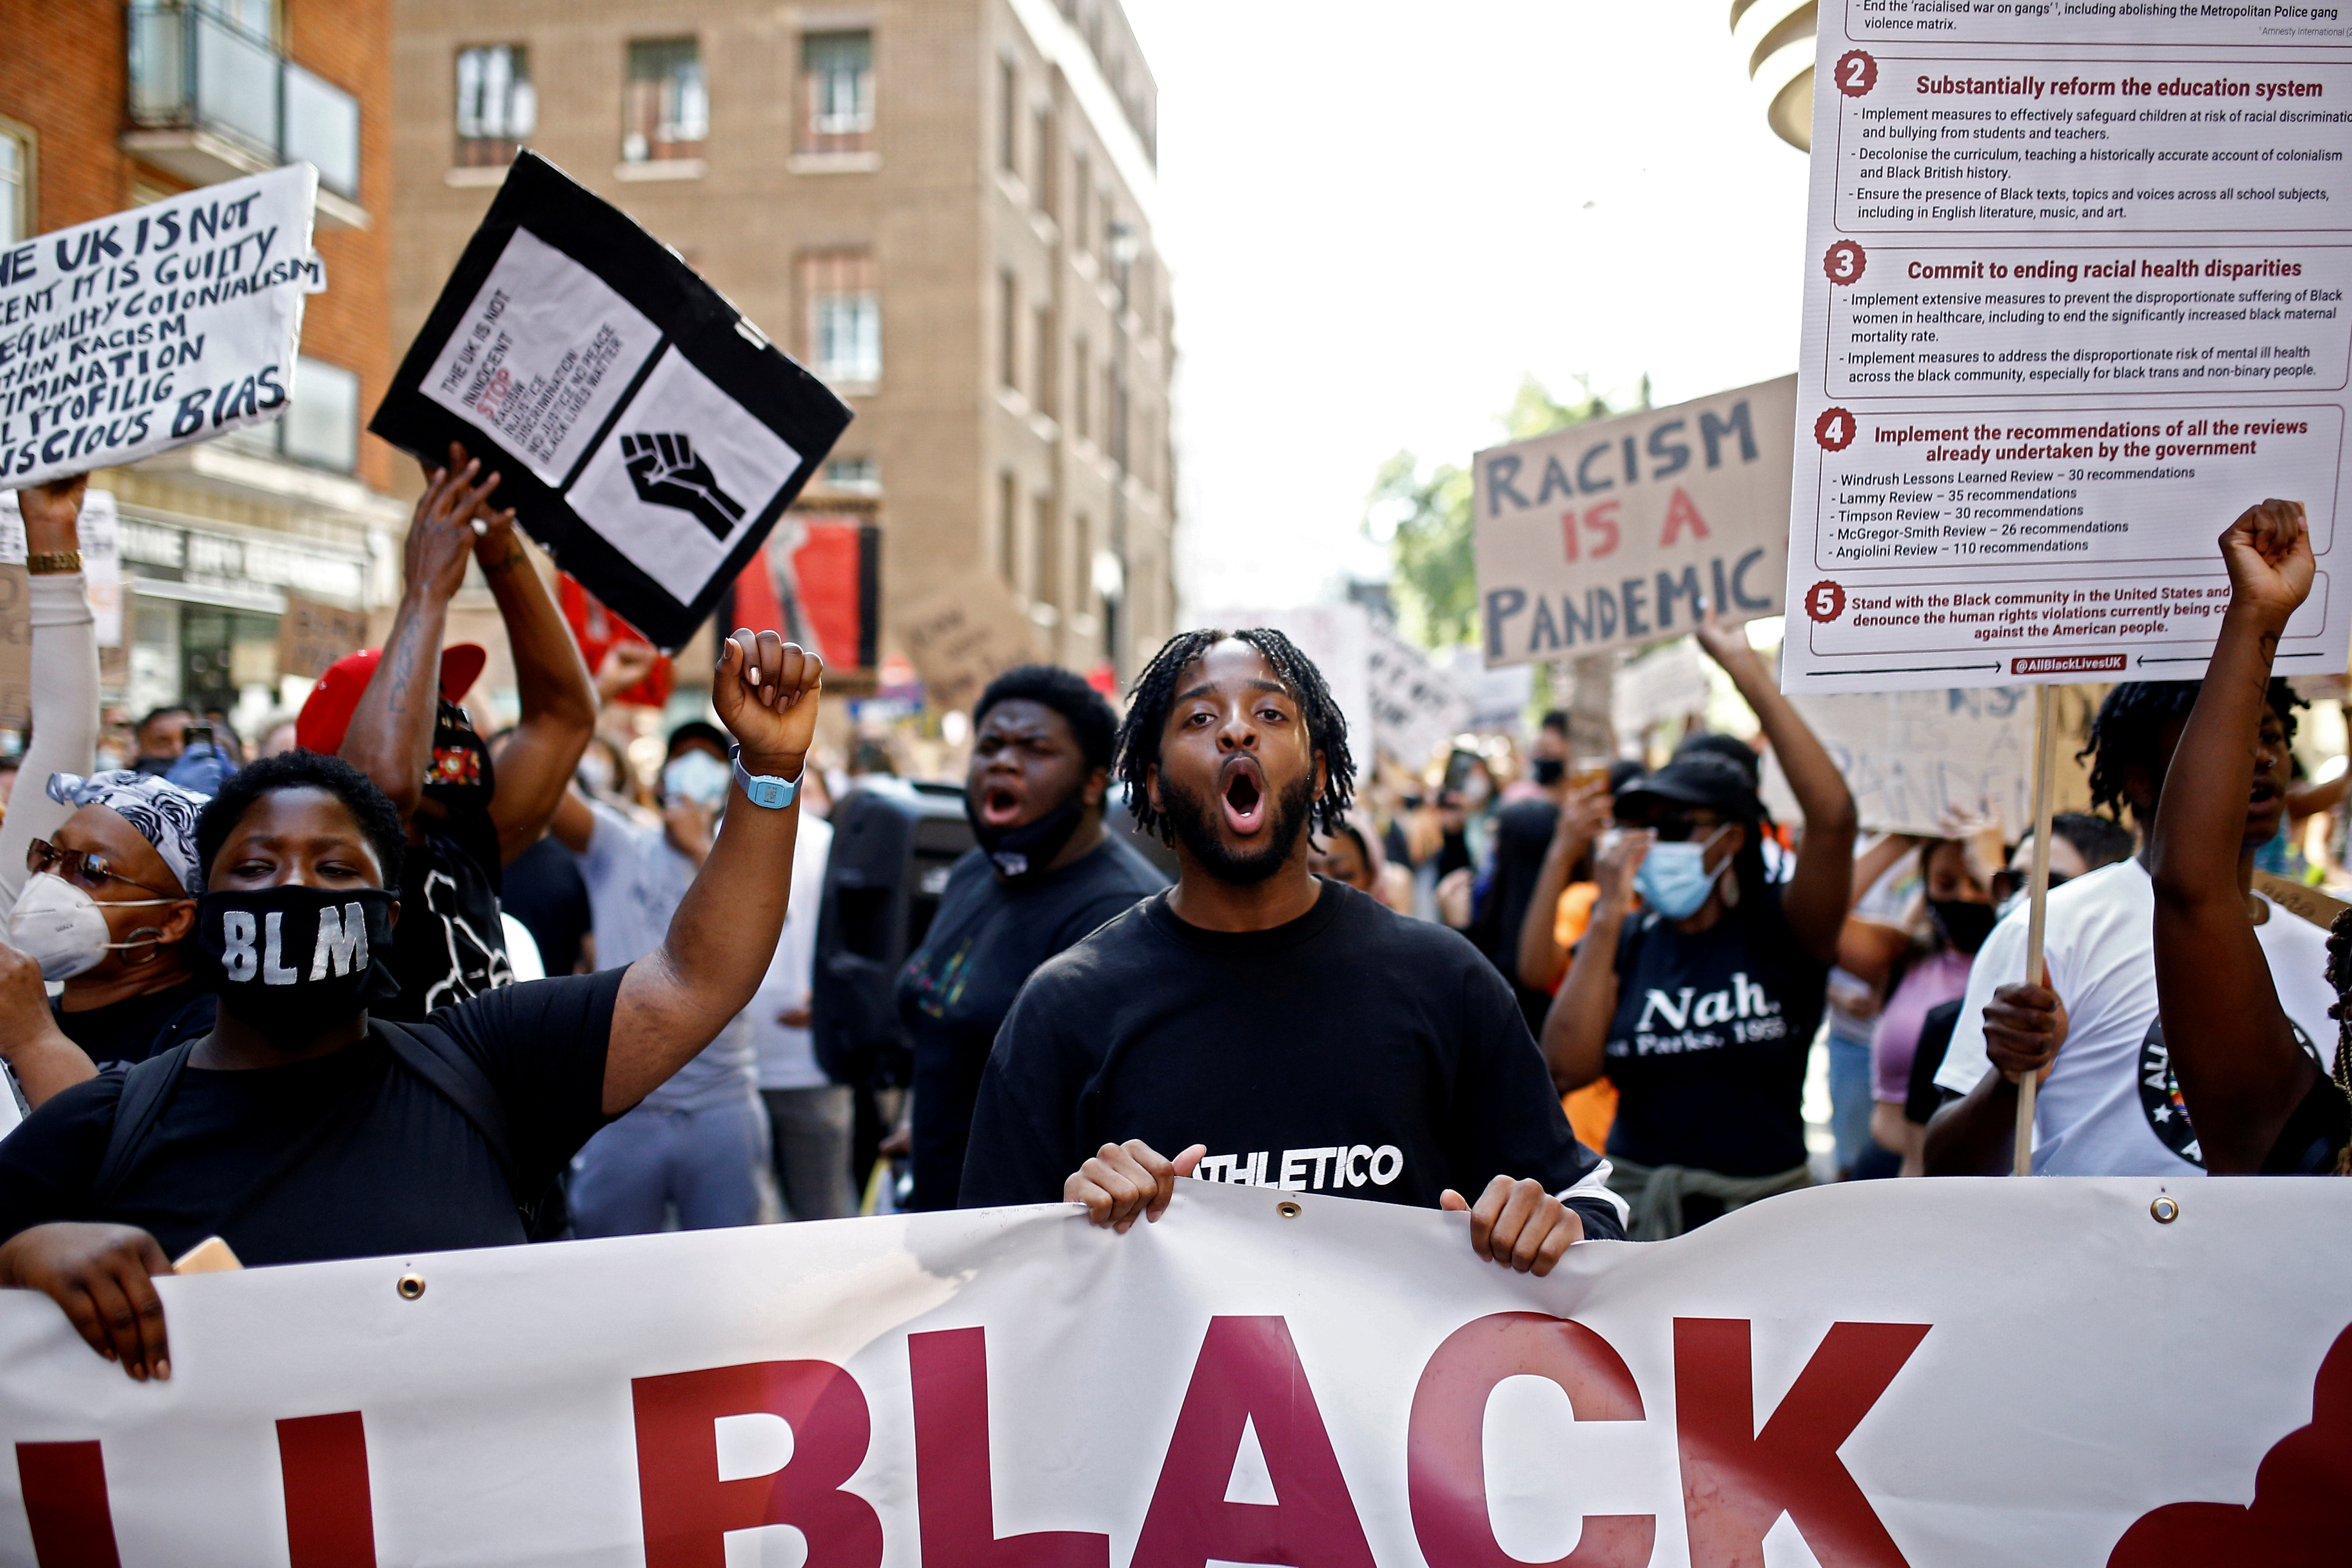 Demonstrators take part in a Black Lives Matter protest in London, Britain, July 12, 2020. REUTERS/Henry Nicholls/File Photo